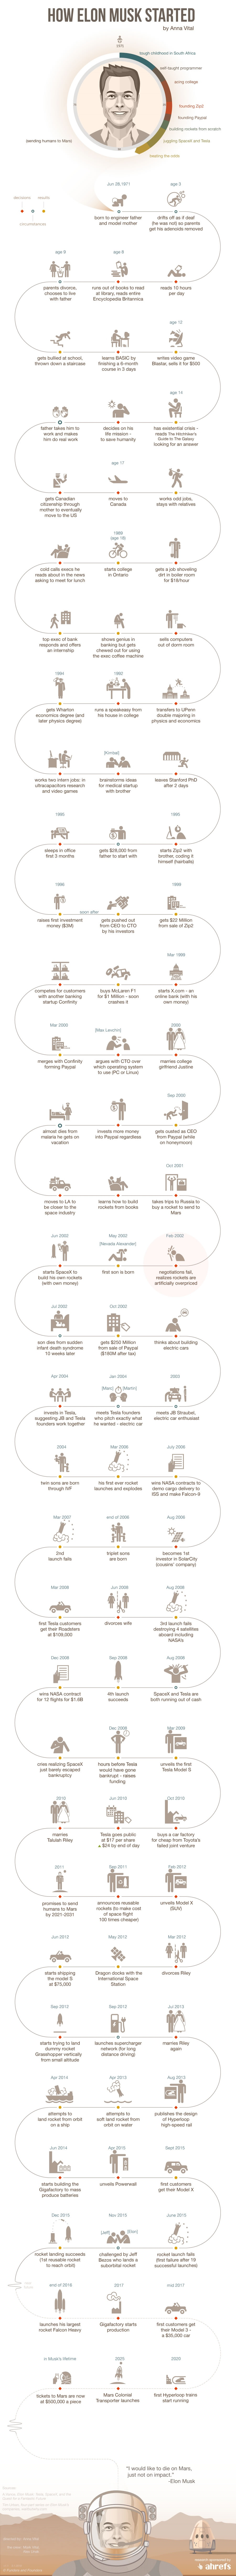 Step By How Elon Musk Built His Empire